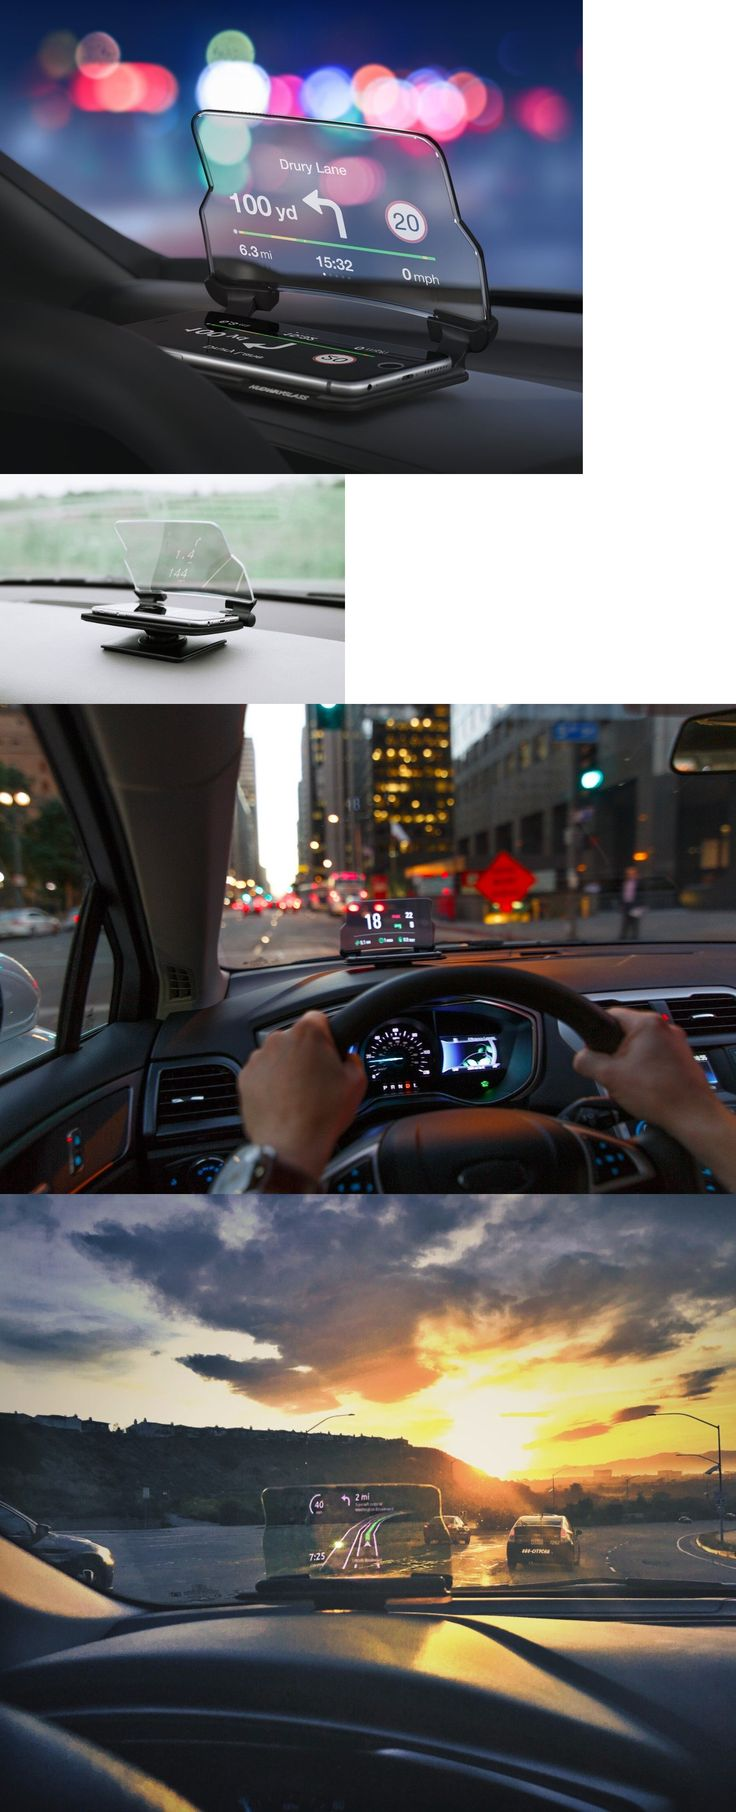 17 best ideas about head up display on pinterest heads. Black Bedroom Furniture Sets. Home Design Ideas